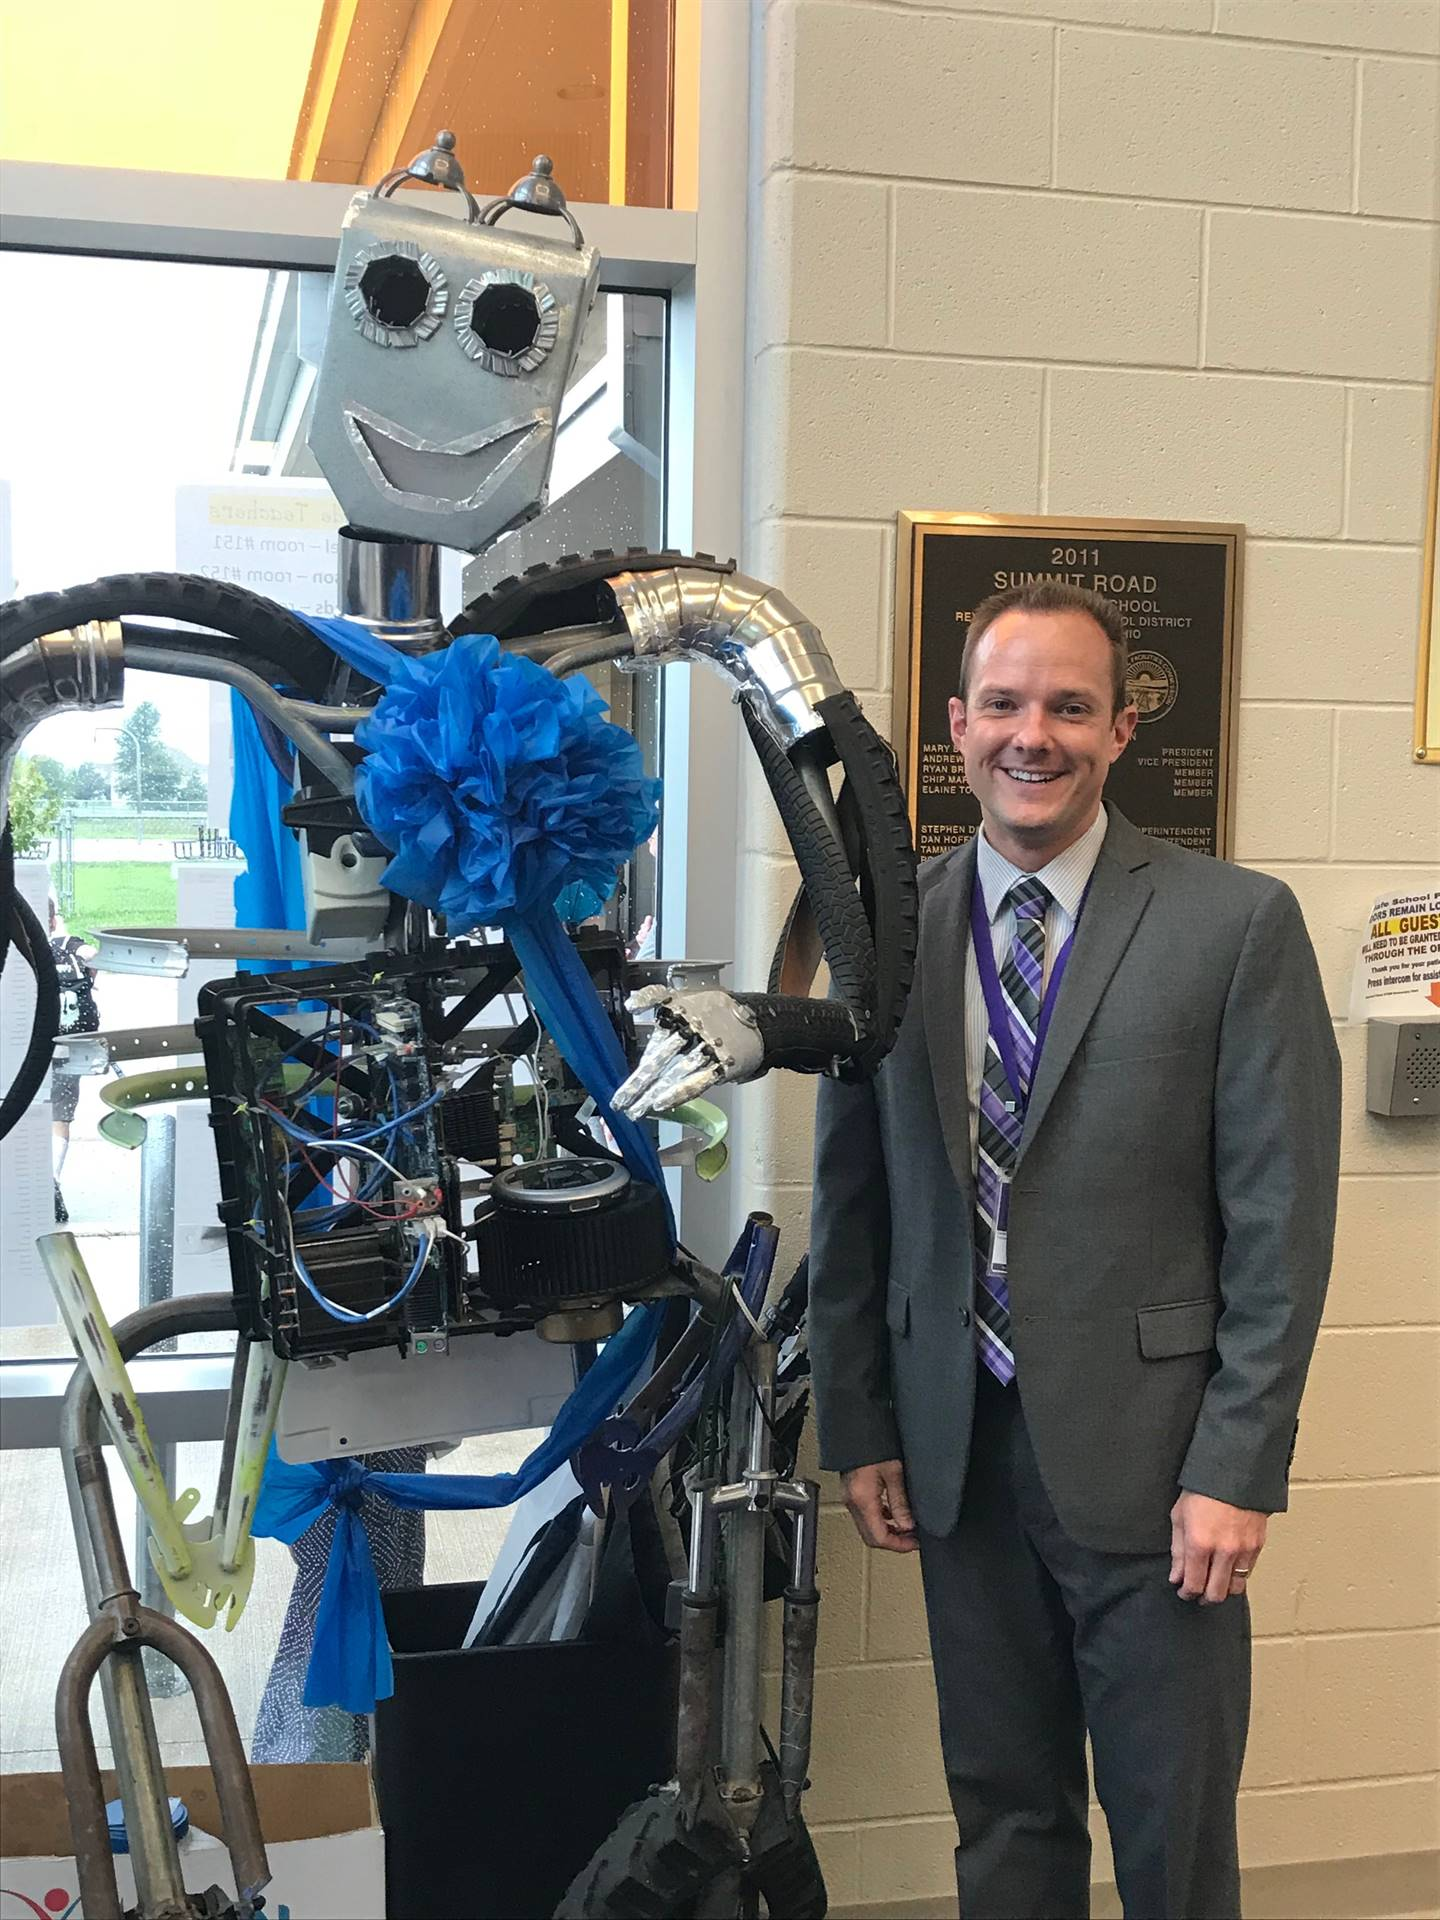 Photo of Principal with Sparky the robot